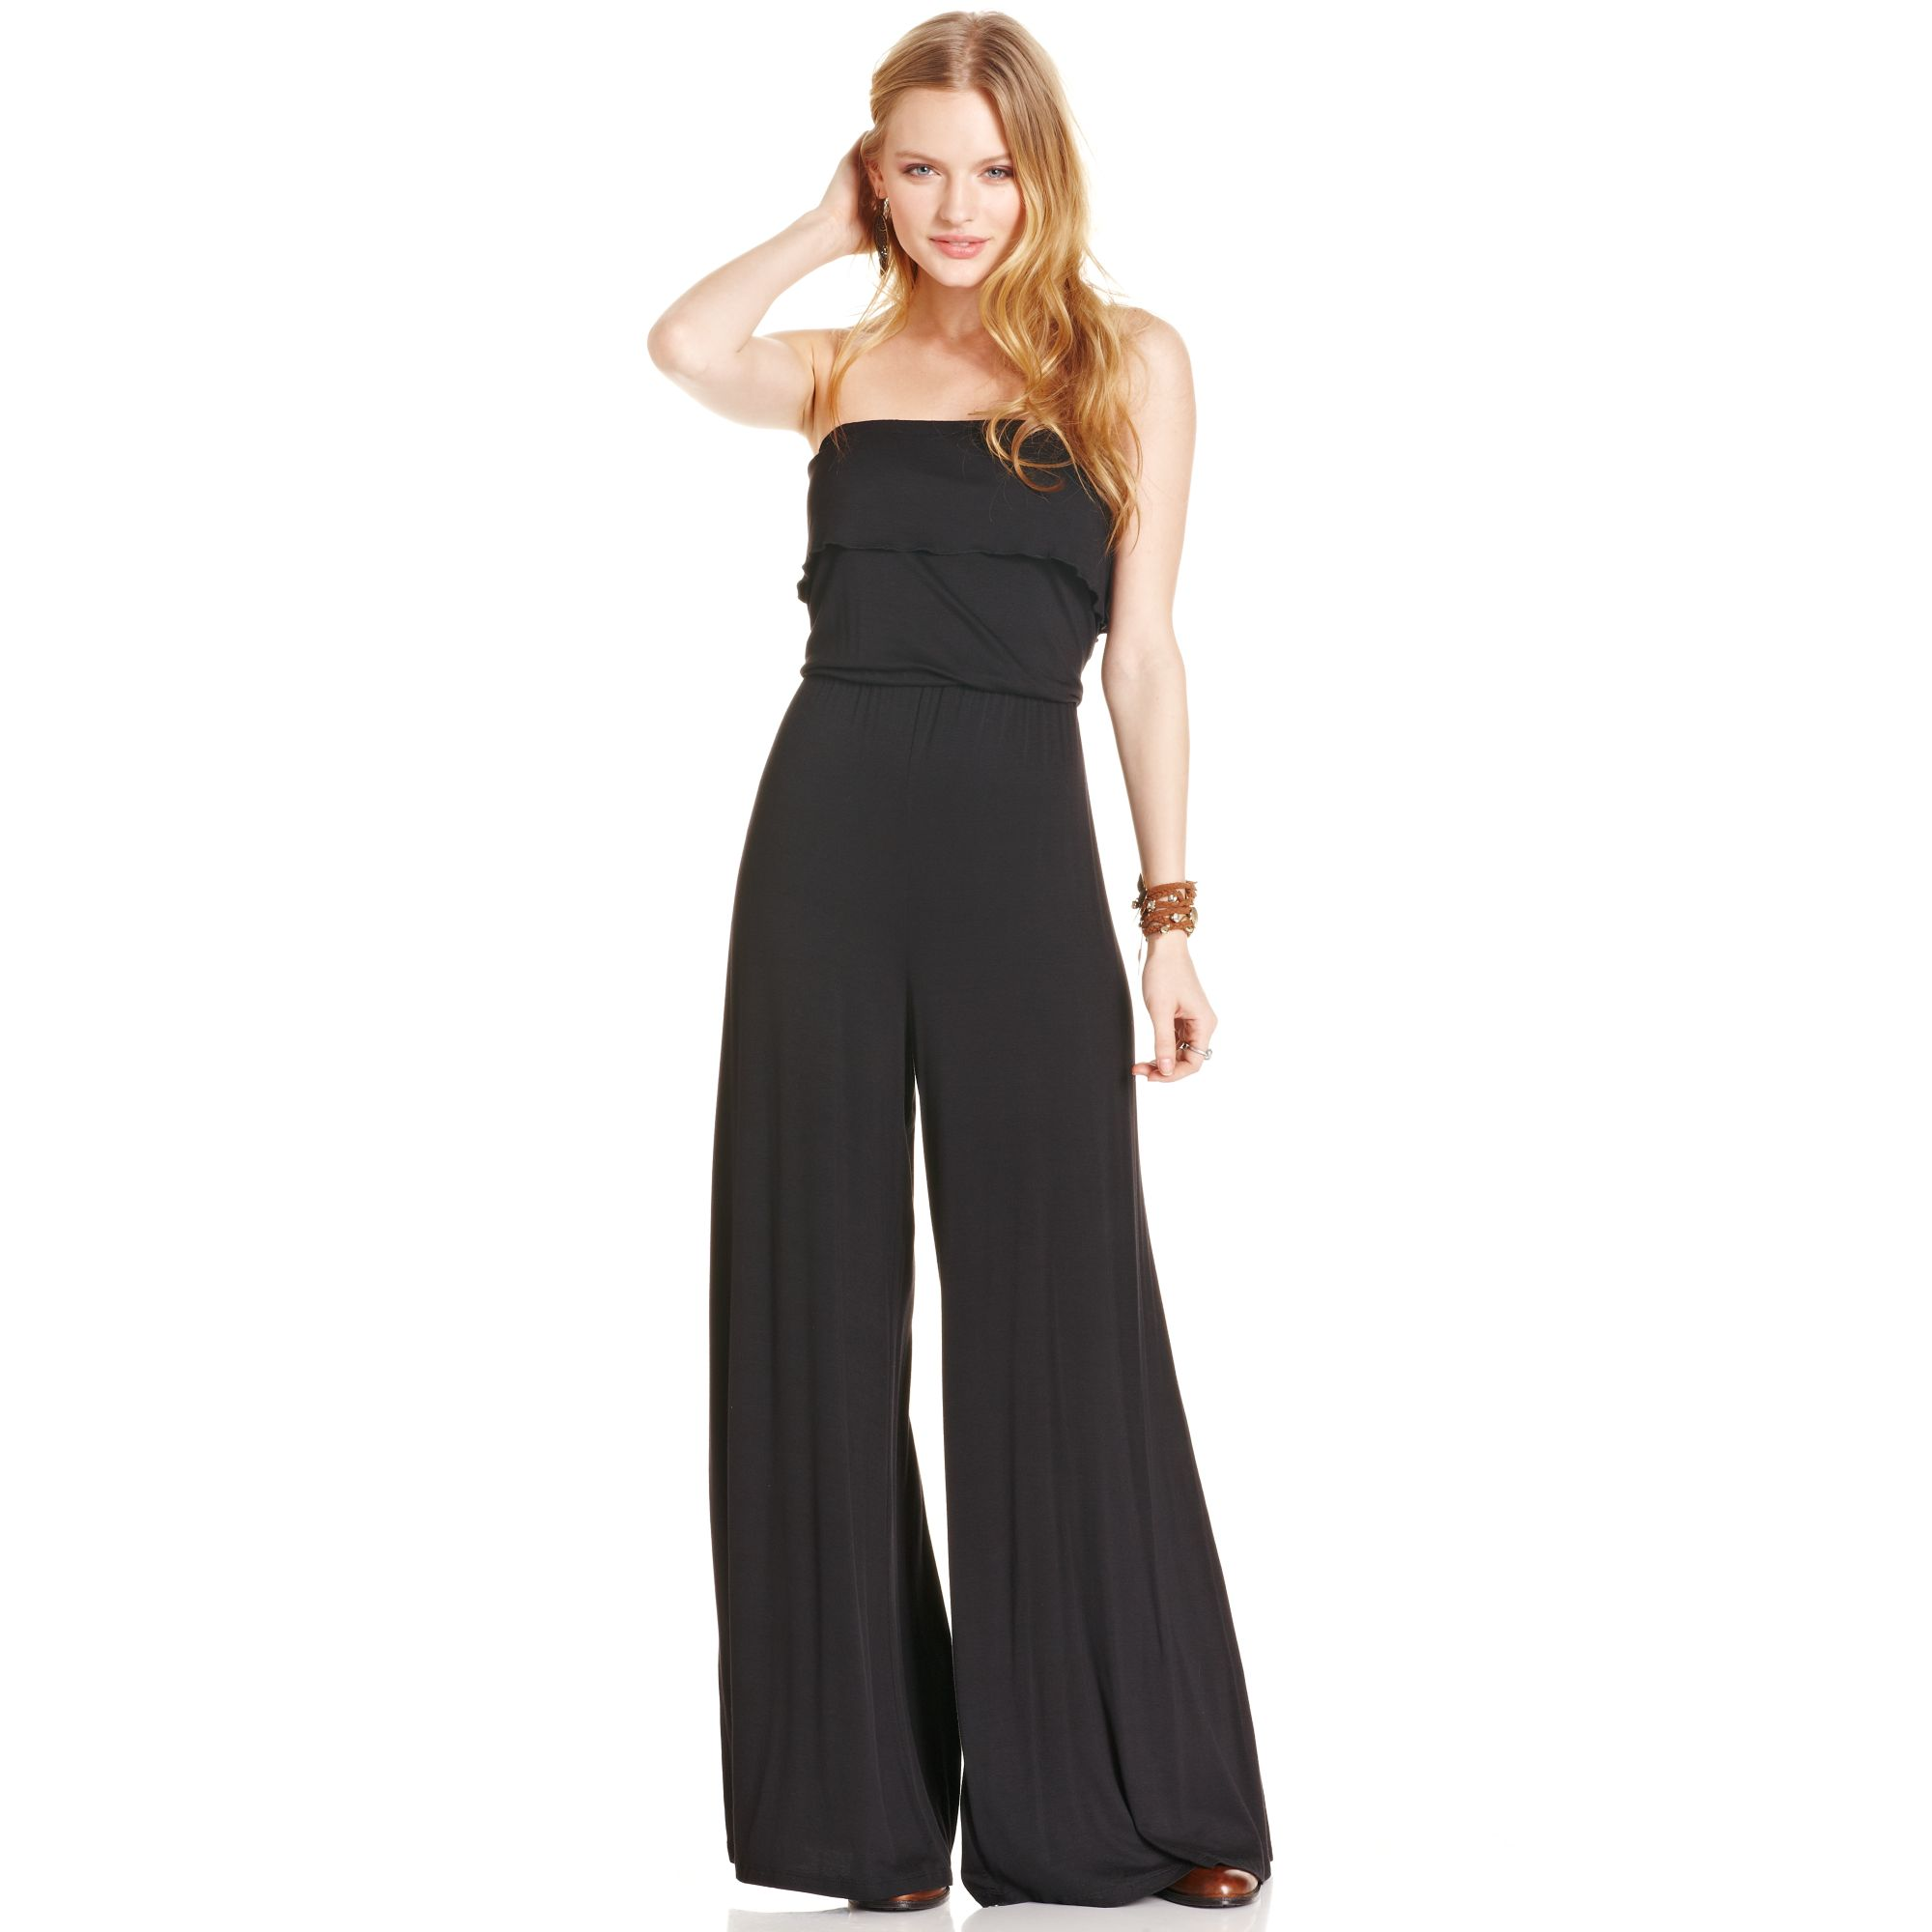 beaefc47a6f8 Lyst - American Rag Strapless Wide Leg Jumpsuit in Black